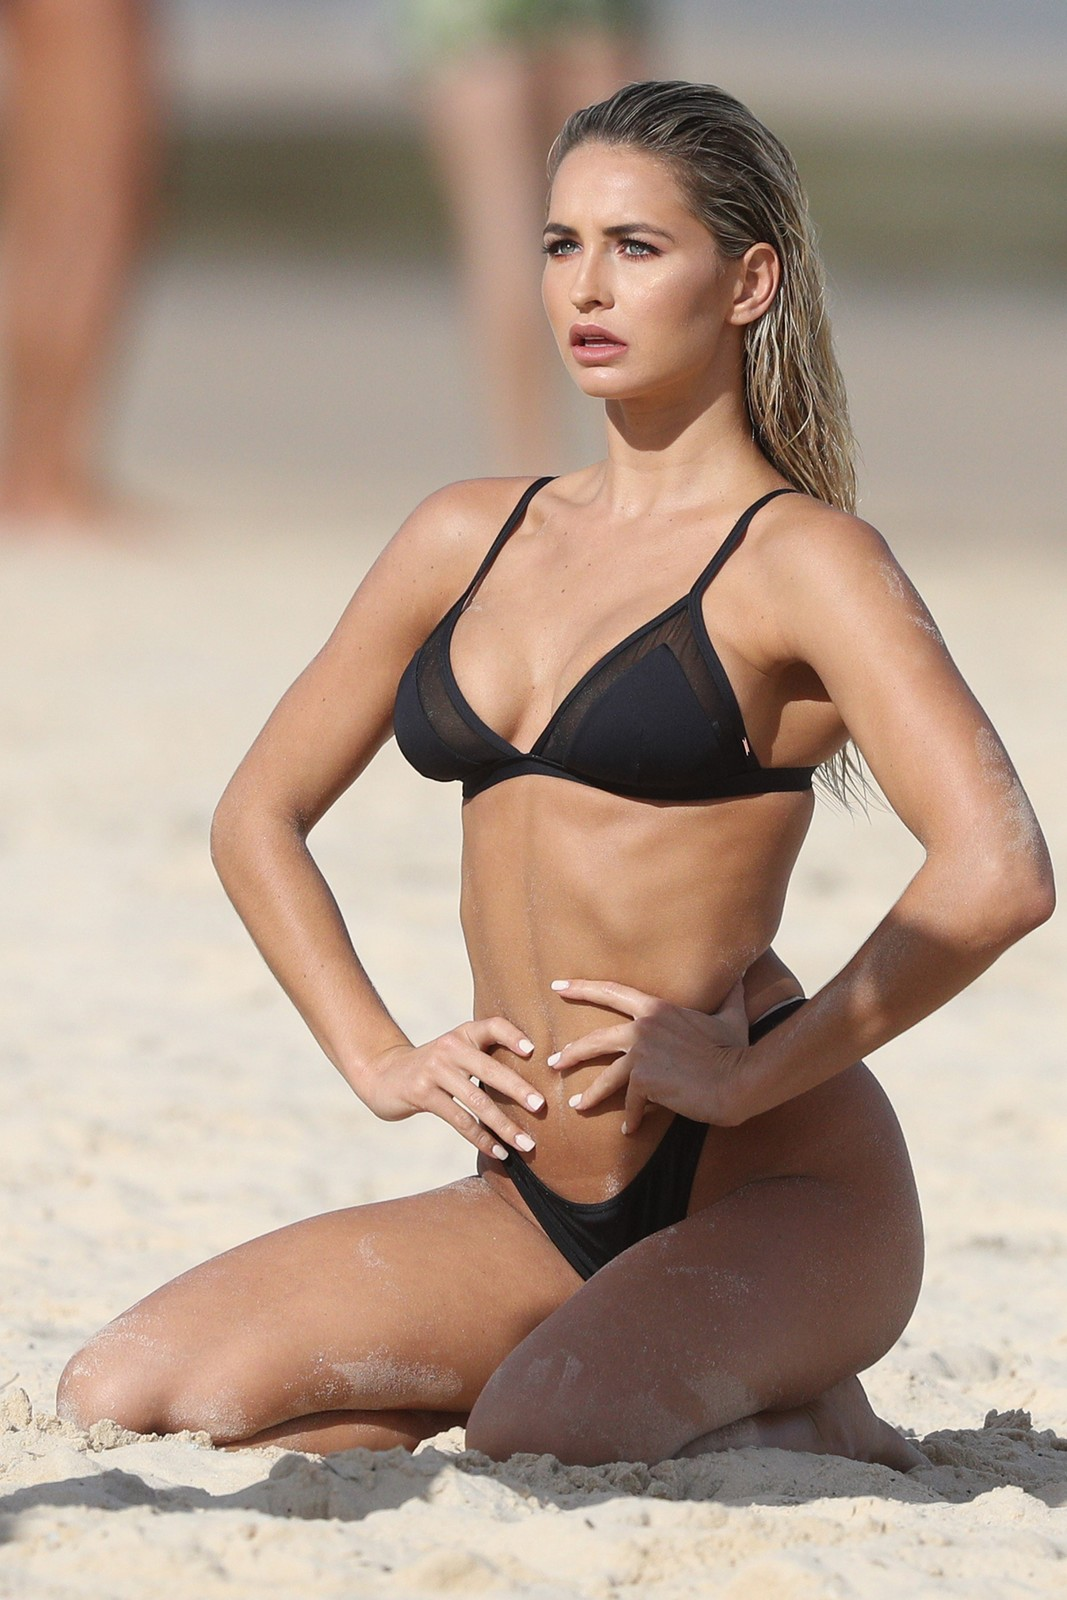 Madison Edwards - Bikini photoshoot (Sydney)